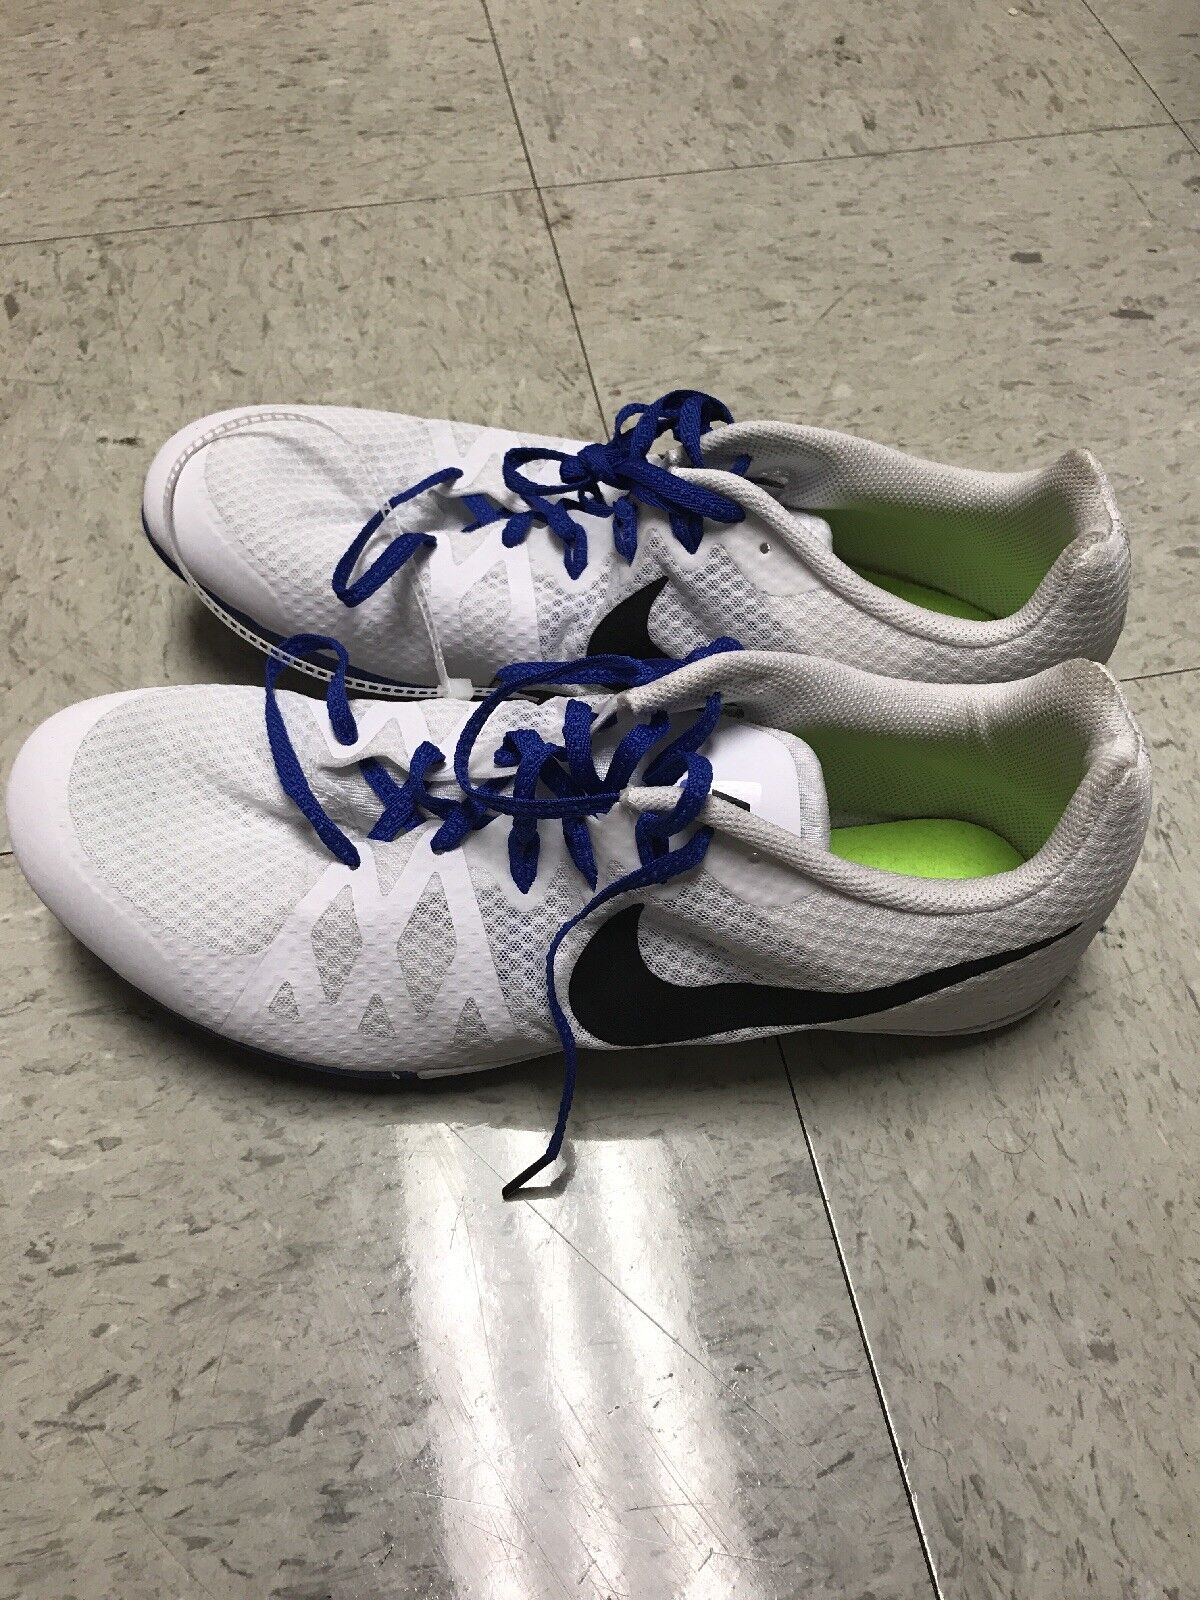 New Nike Zoom Rival M 8 Mens Multi Spikes Use Track & Field Spikes Multi Shoes Run Jump White 0d7a35